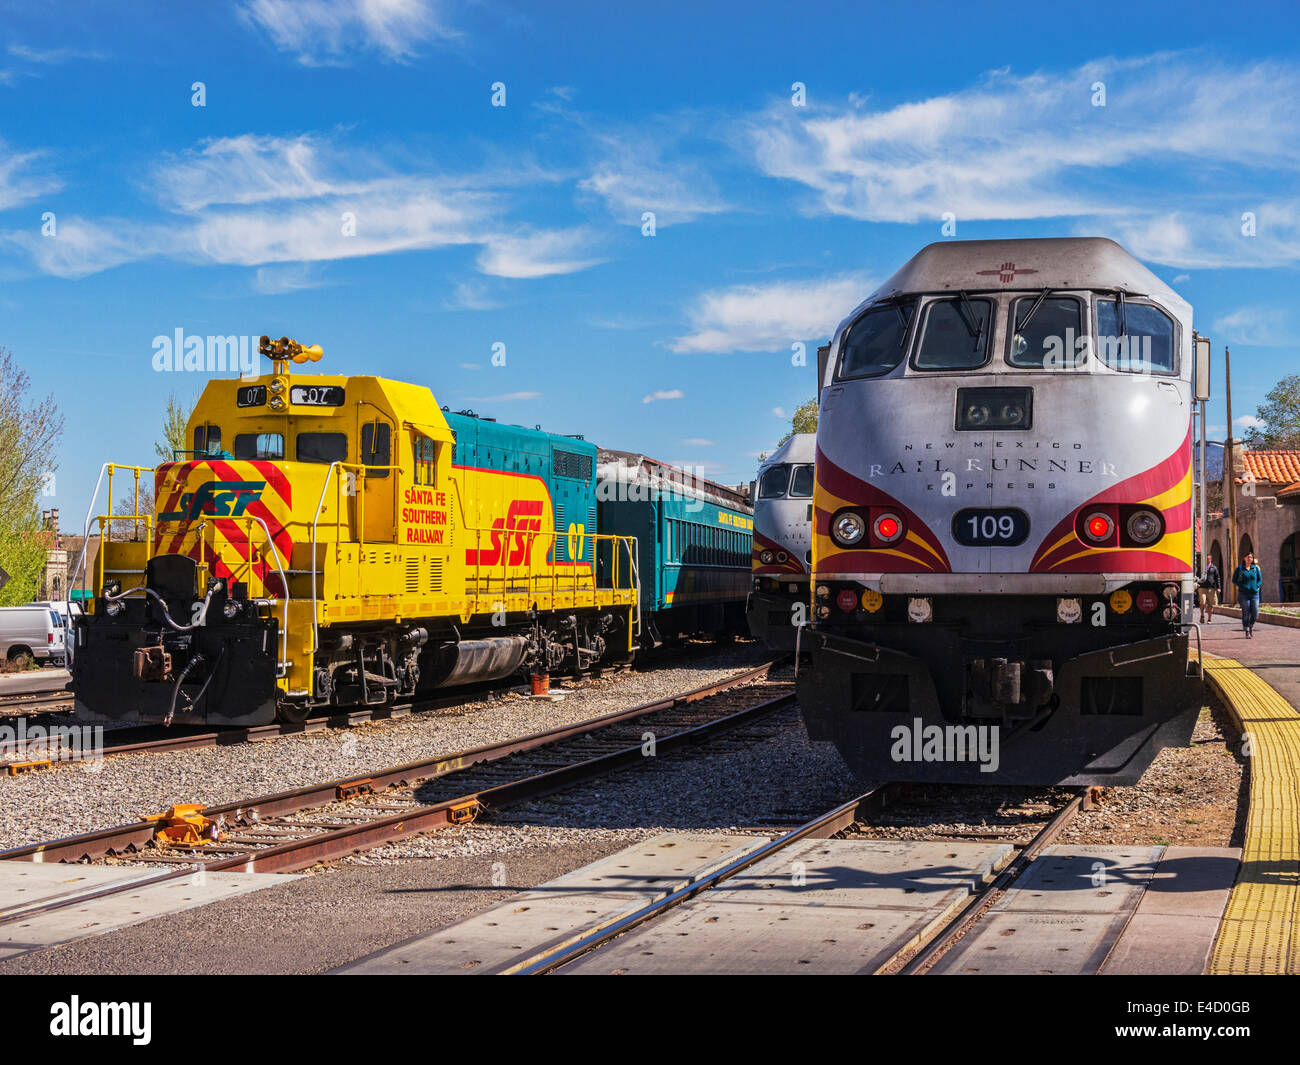 Trains in Santa Fe Station, New Mexico. - Stock Image